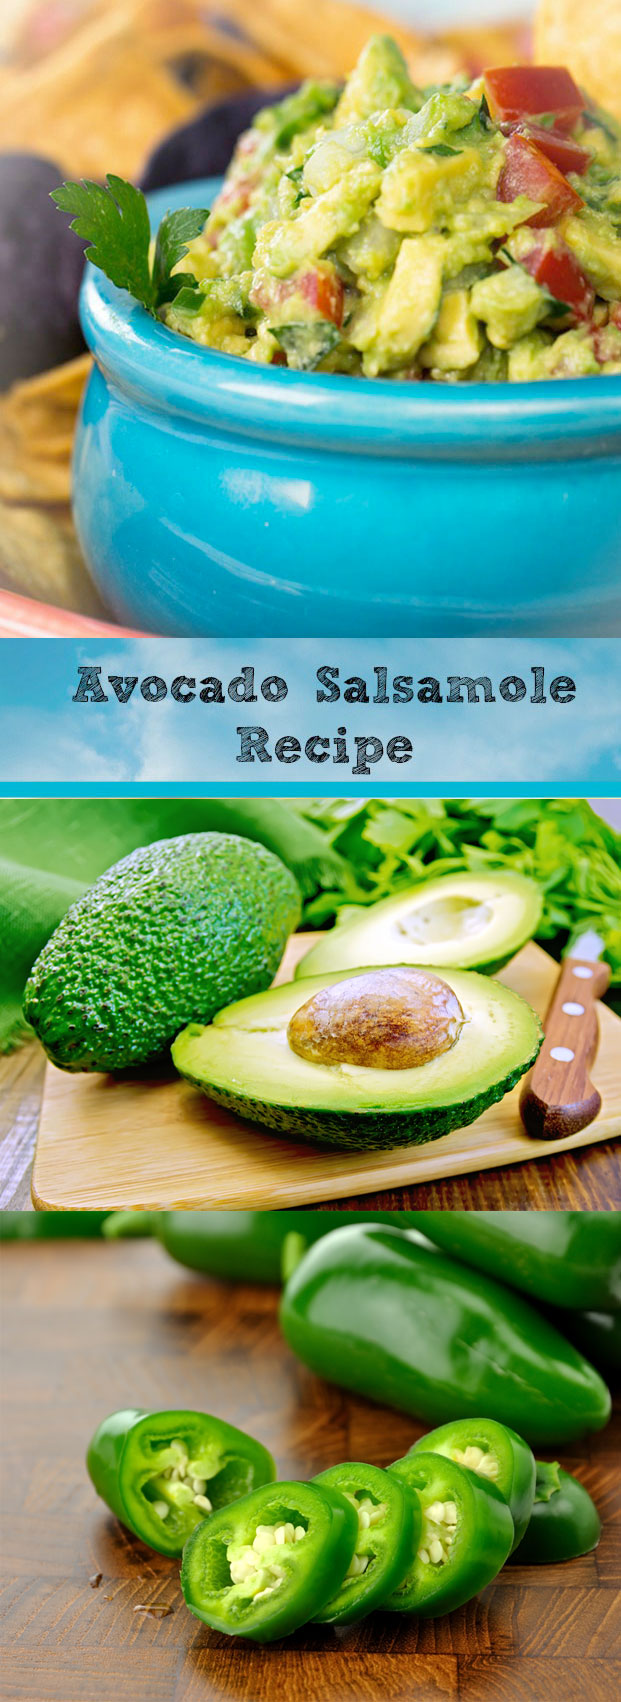 Guacamole Recipe : Avocado Salsamole Recipe